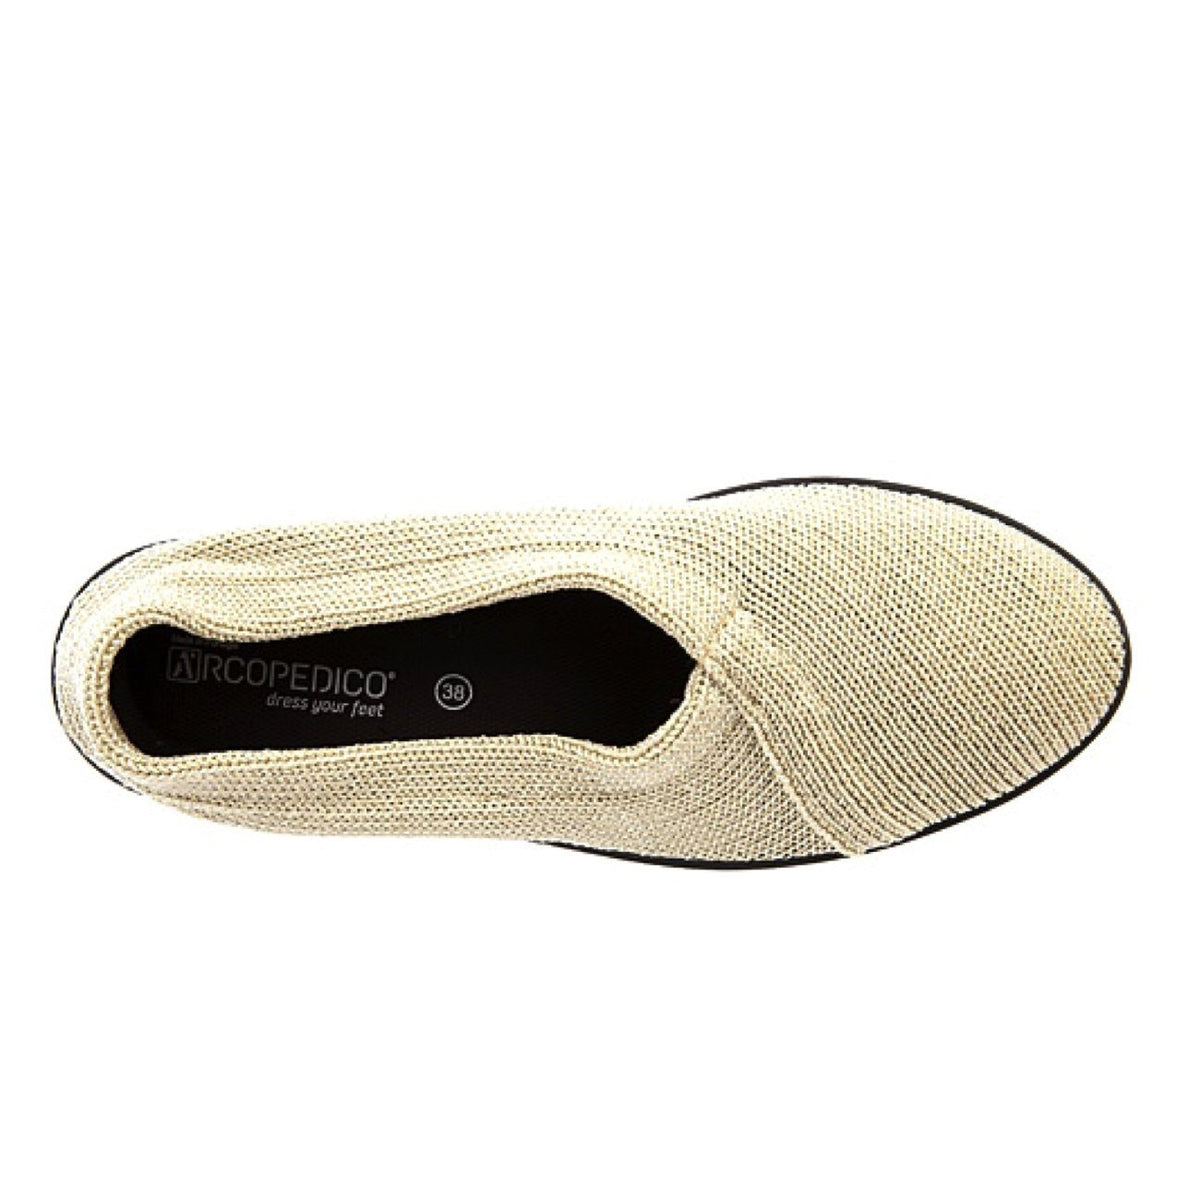 Arcopedico Mailu Sport- 04 Beige Shoes Arcopedico